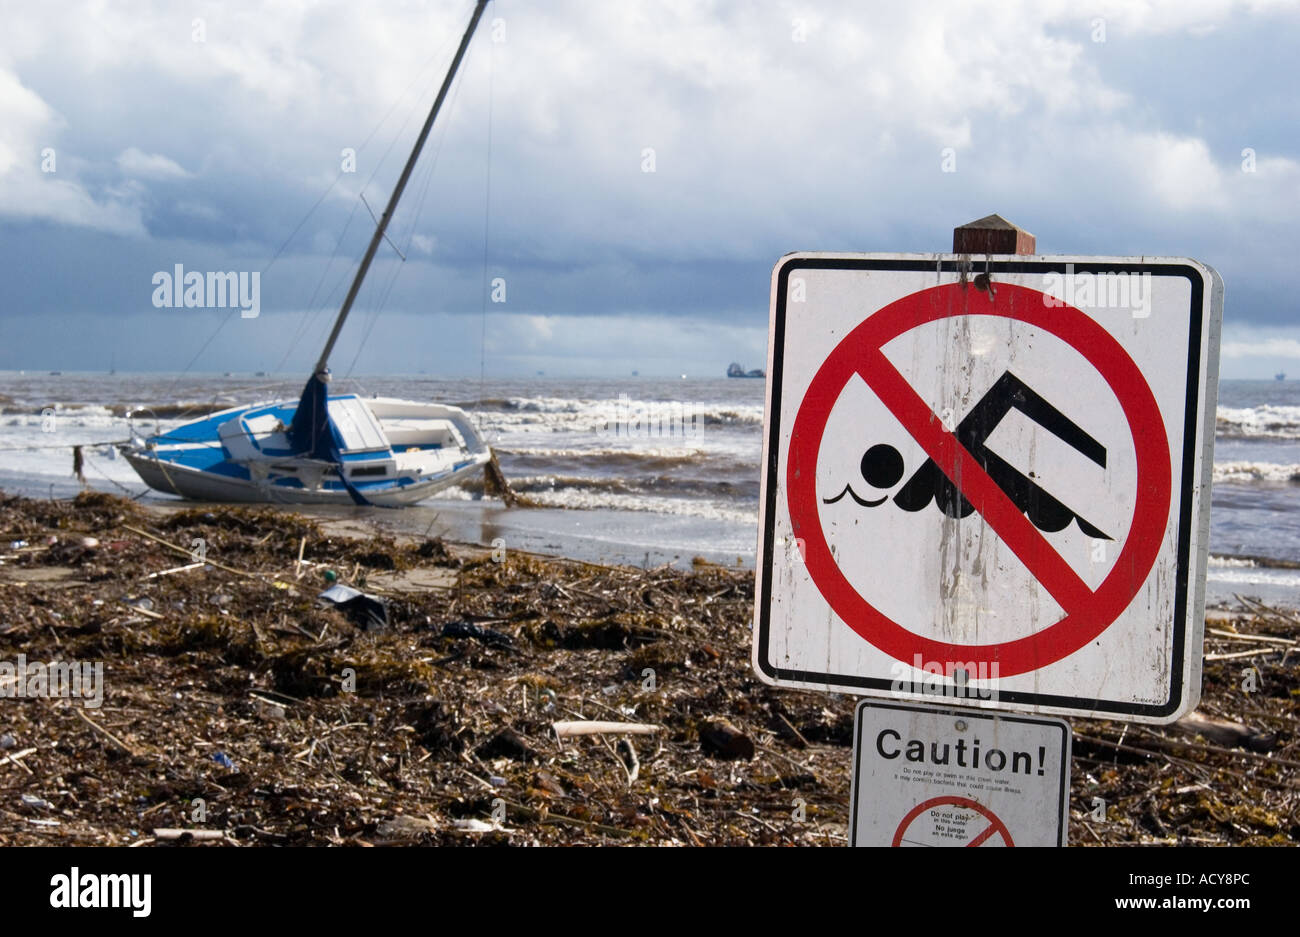 Shipwreck sailboat and no swimming sign due to high levels of water pollution after winter storm, Santa Barbara, Stock Photo